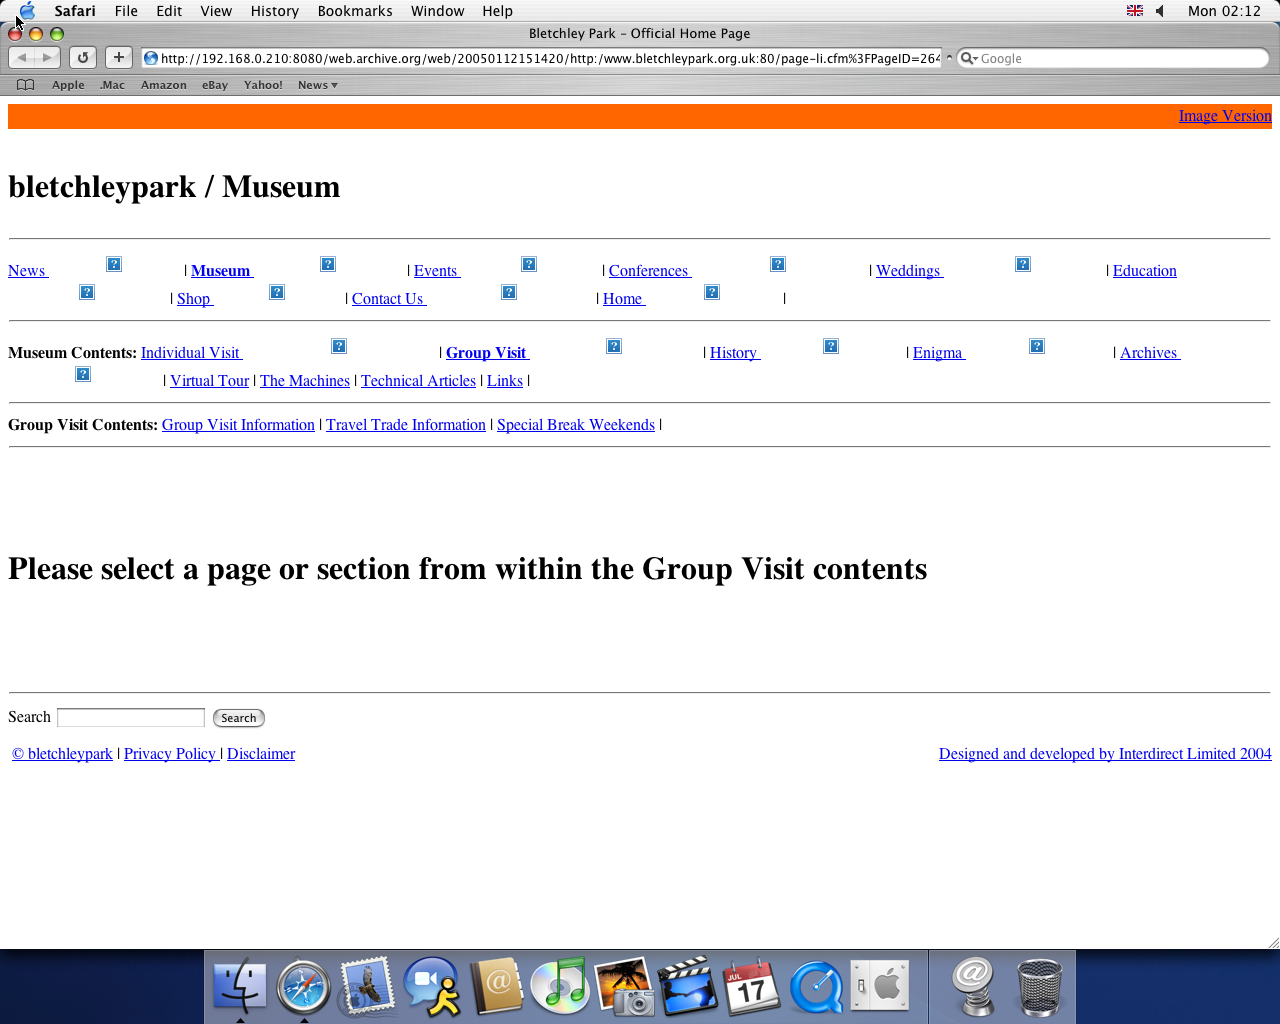 OS X 10.3 PPC with Safari 1.1 displaying a page from Bletchley Park Museum archived at January 12, 2005 at 15:14:20